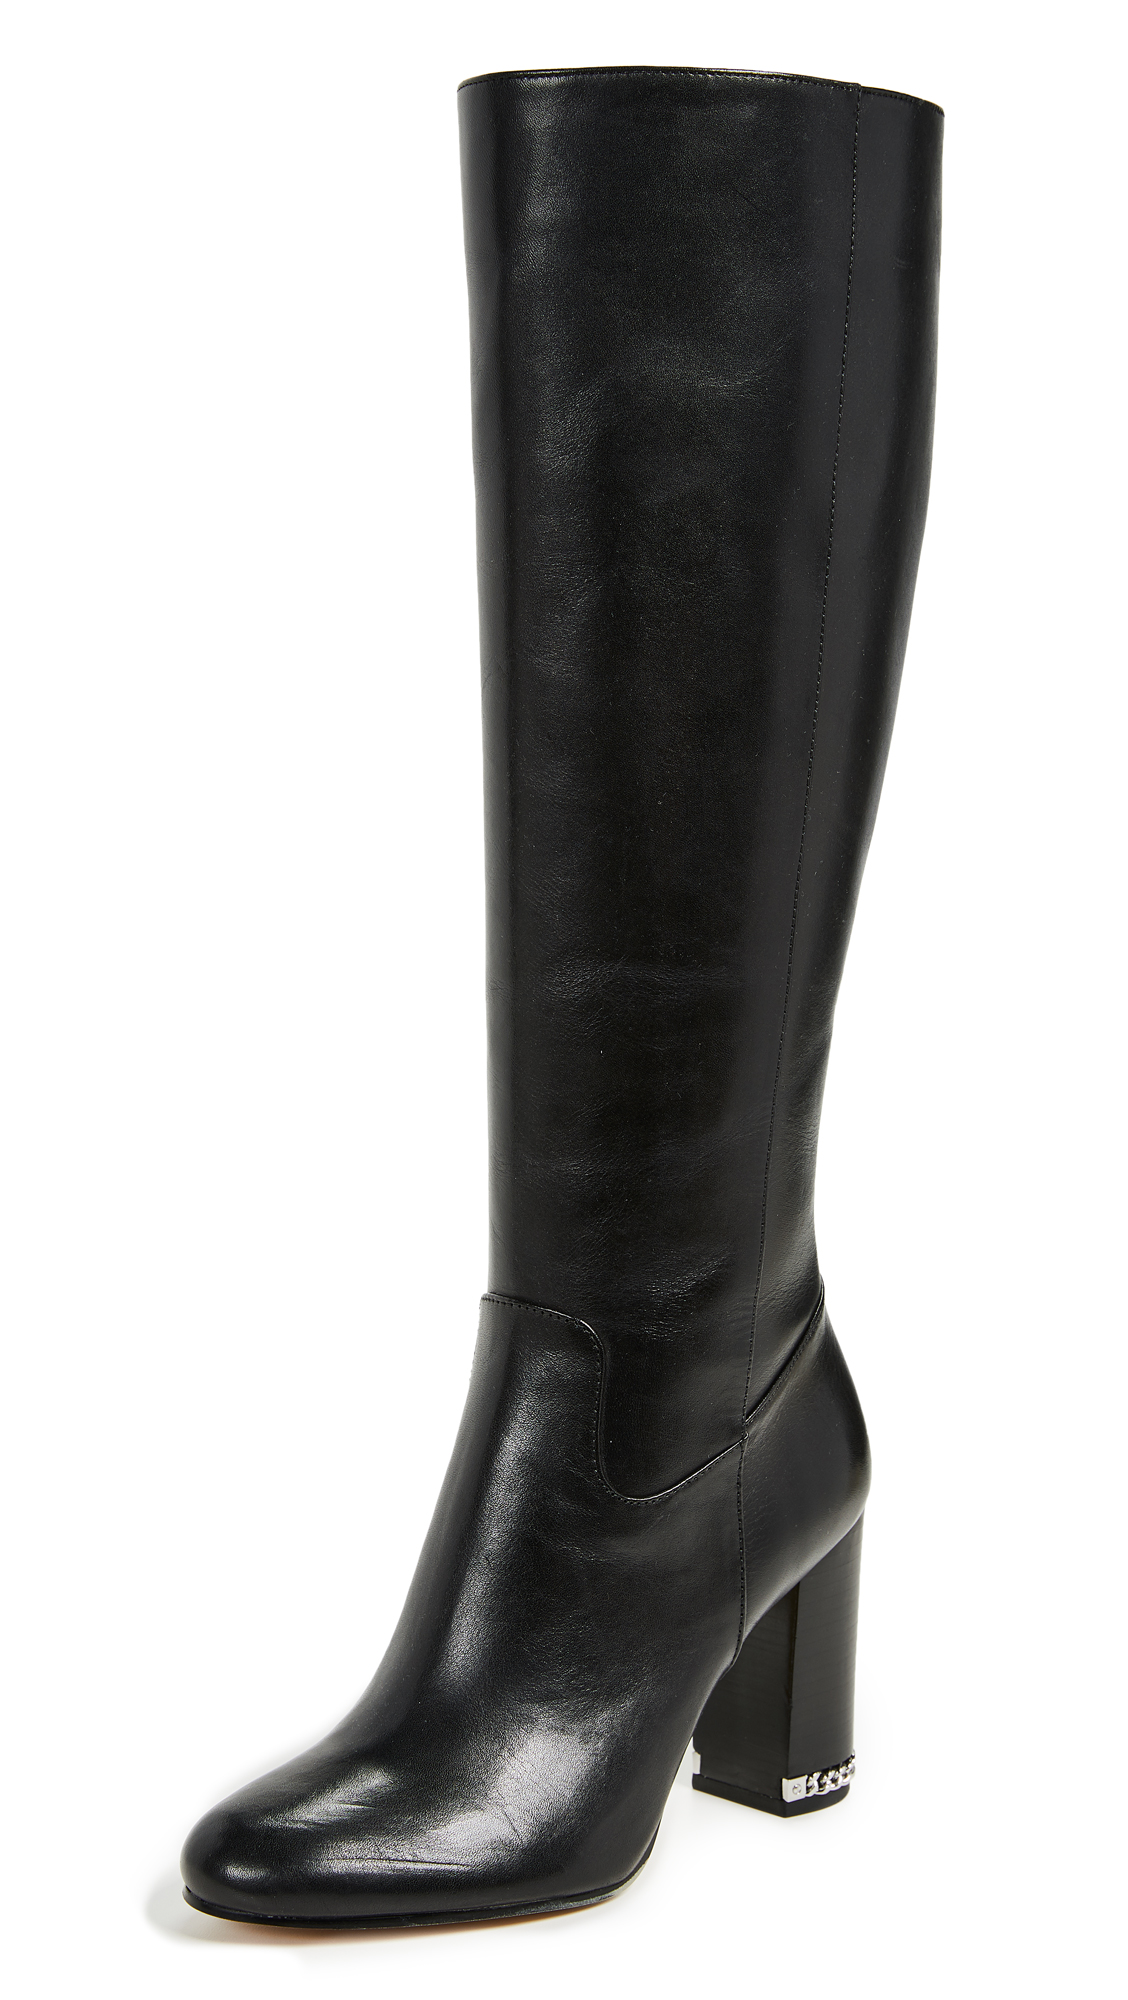 MICHAEL Michael Kors Walker Tall Boots - Black